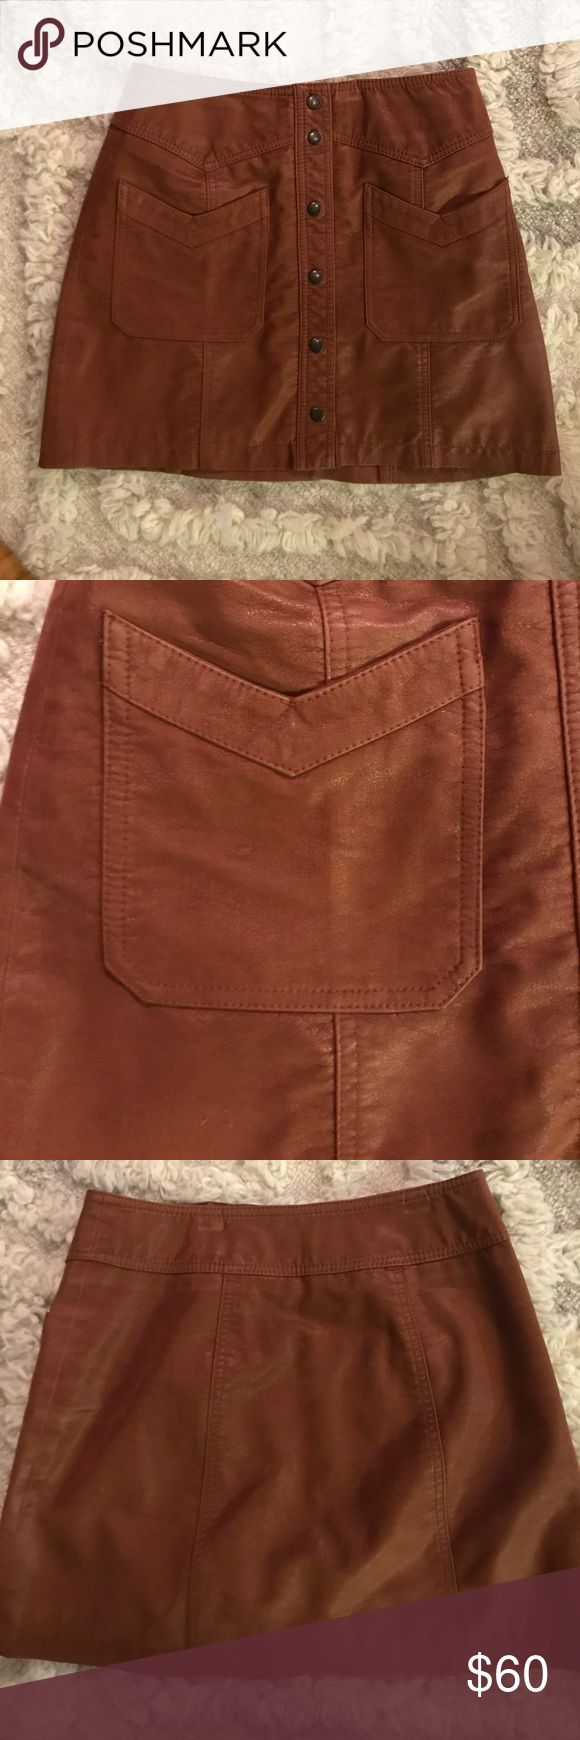 Camel Free People Leather Skirt Leather mini skirt with gold buttons and chevron pocket accents. Fits high waisted, awesome pair with a crop top or a black turtle neck tucked in for a sleeker look! Free People Skirts Mini